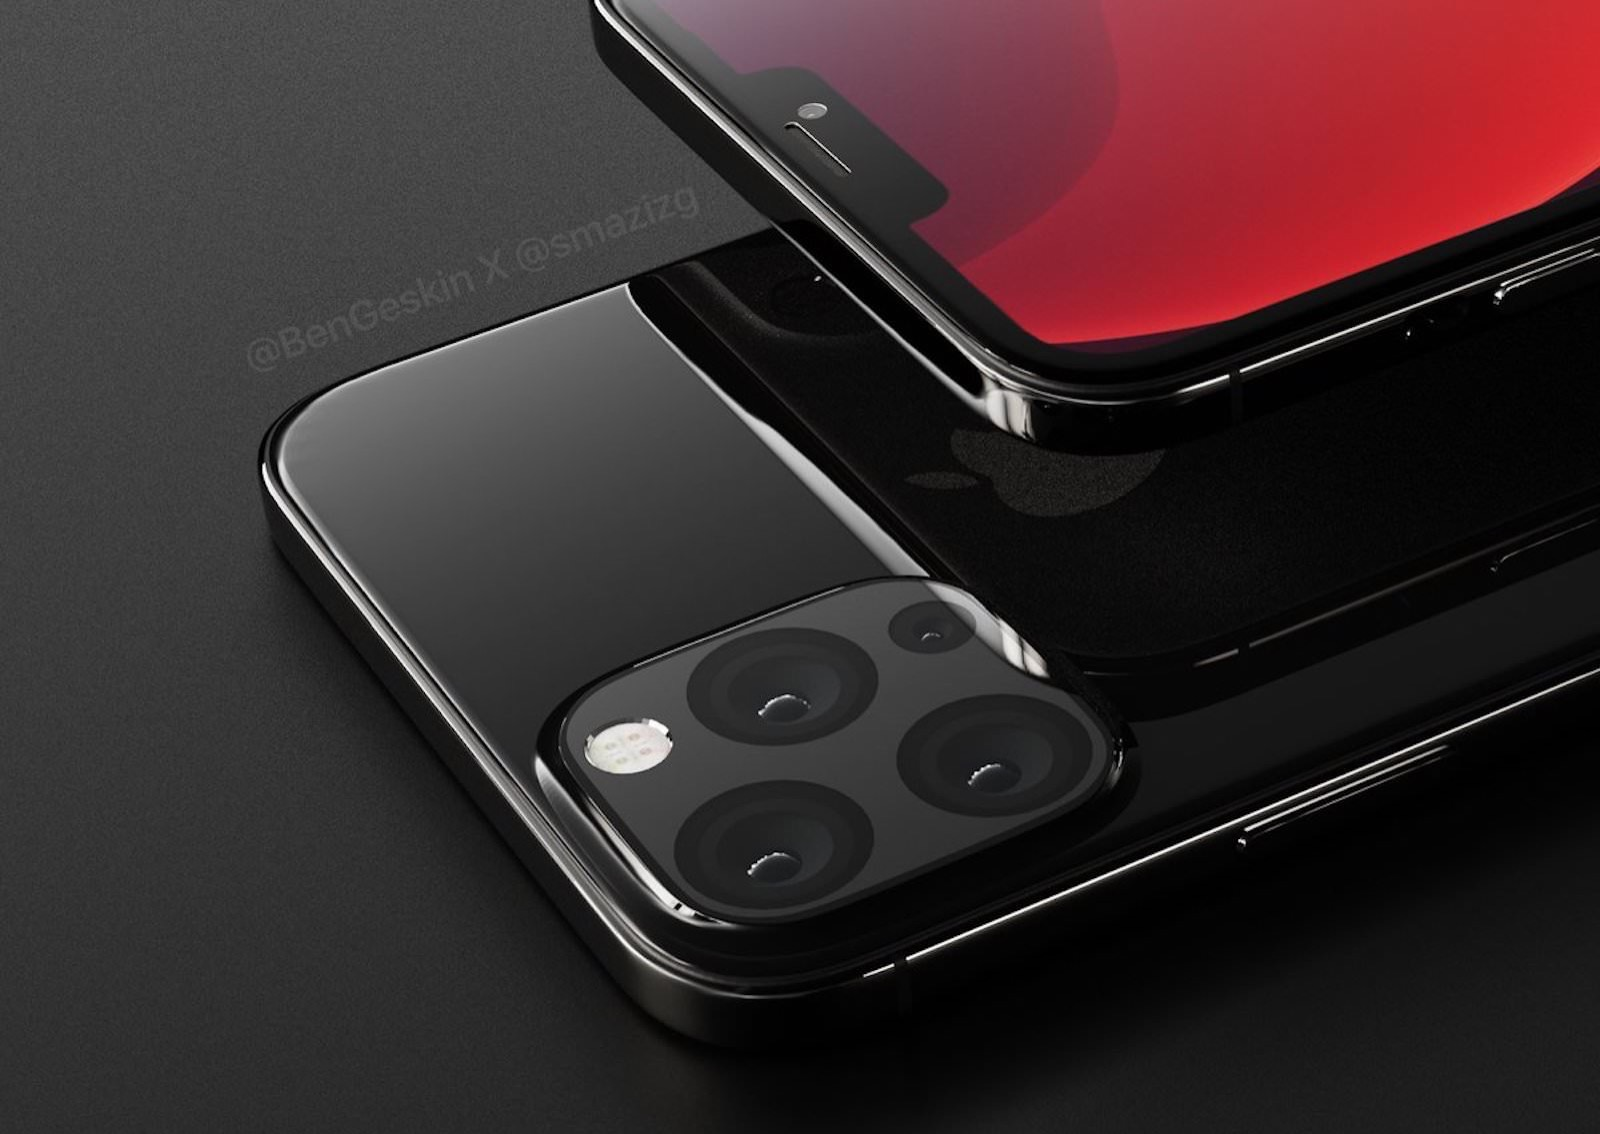 Iphone 2020 concept image